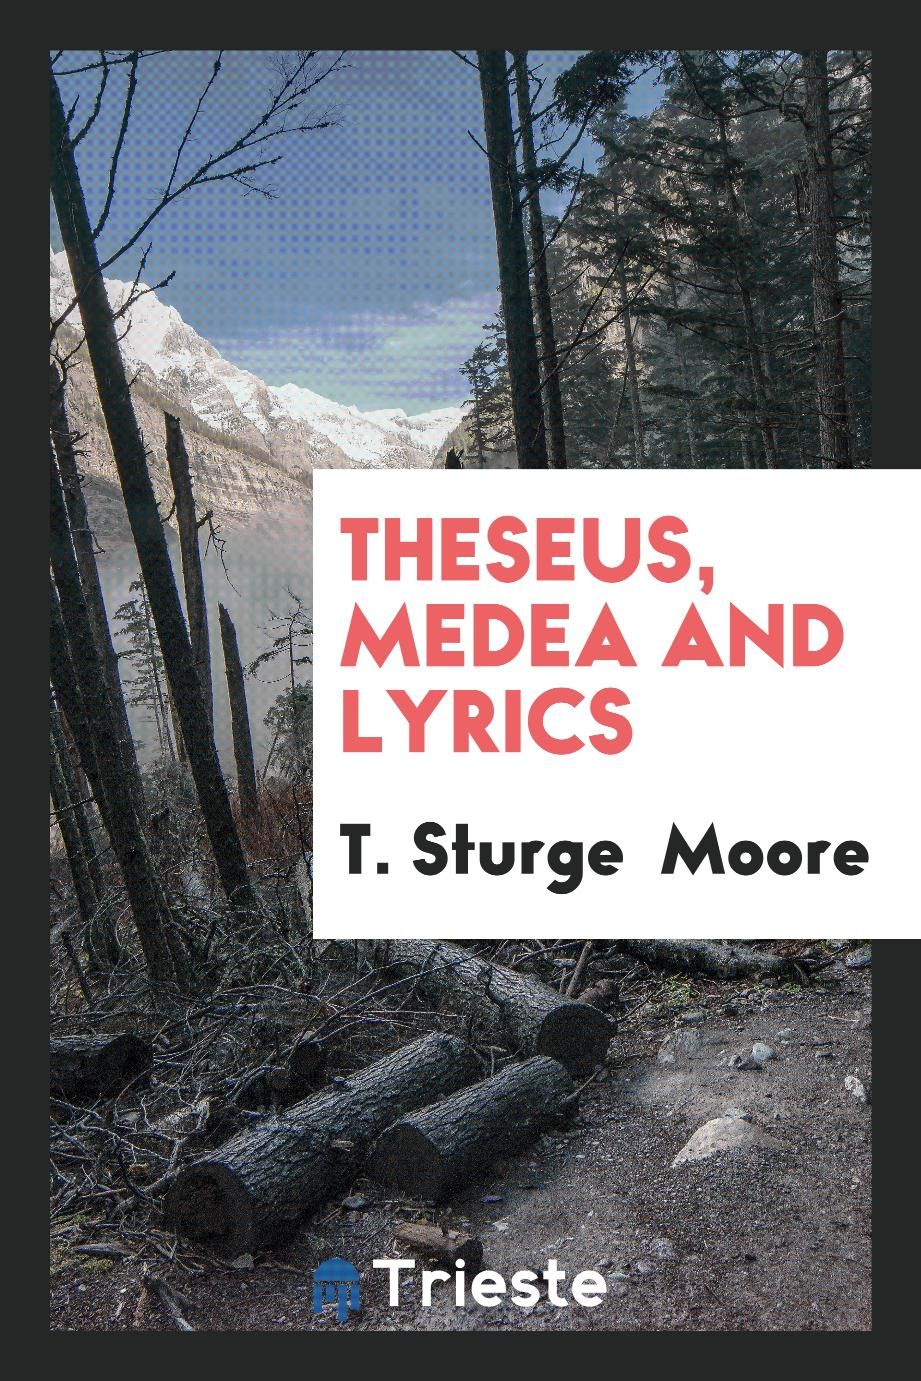 Theseus, Medea and Lyrics